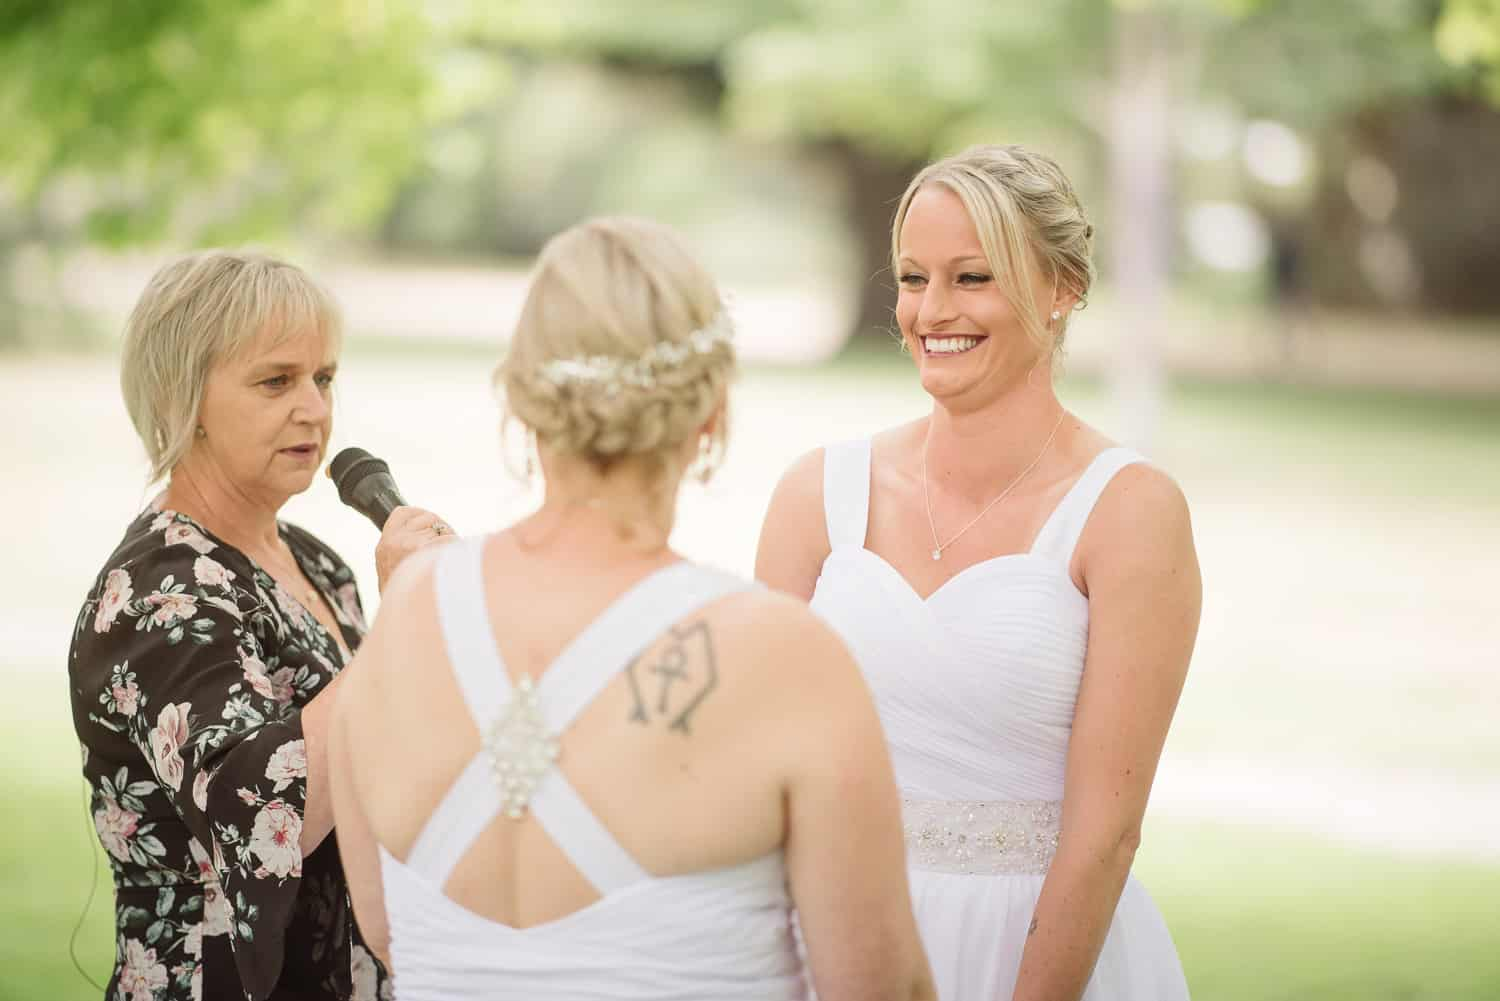 Brides laughing during their wedding ceremony at colac botanic gardens